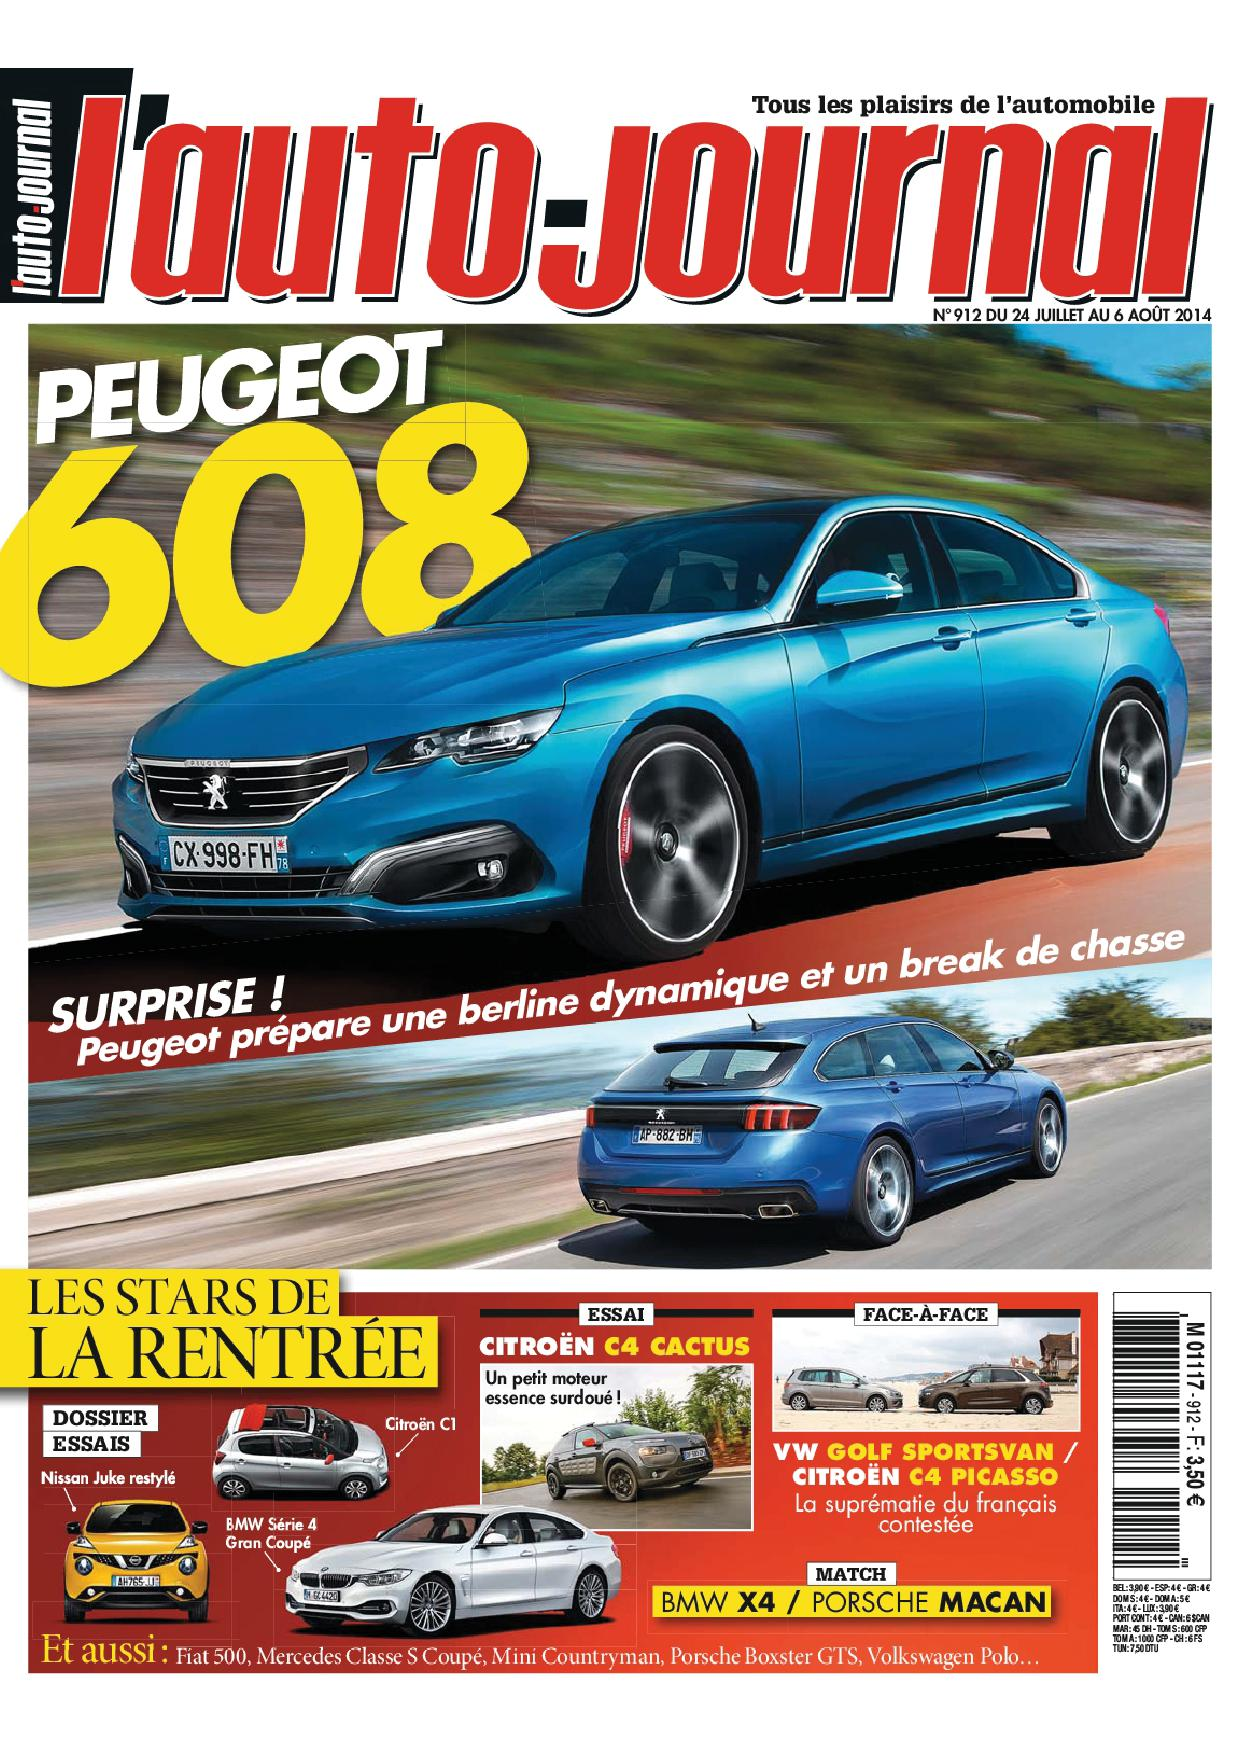 peugeot 608 dans l 39 auto journal page 2 auto titre. Black Bedroom Furniture Sets. Home Design Ideas